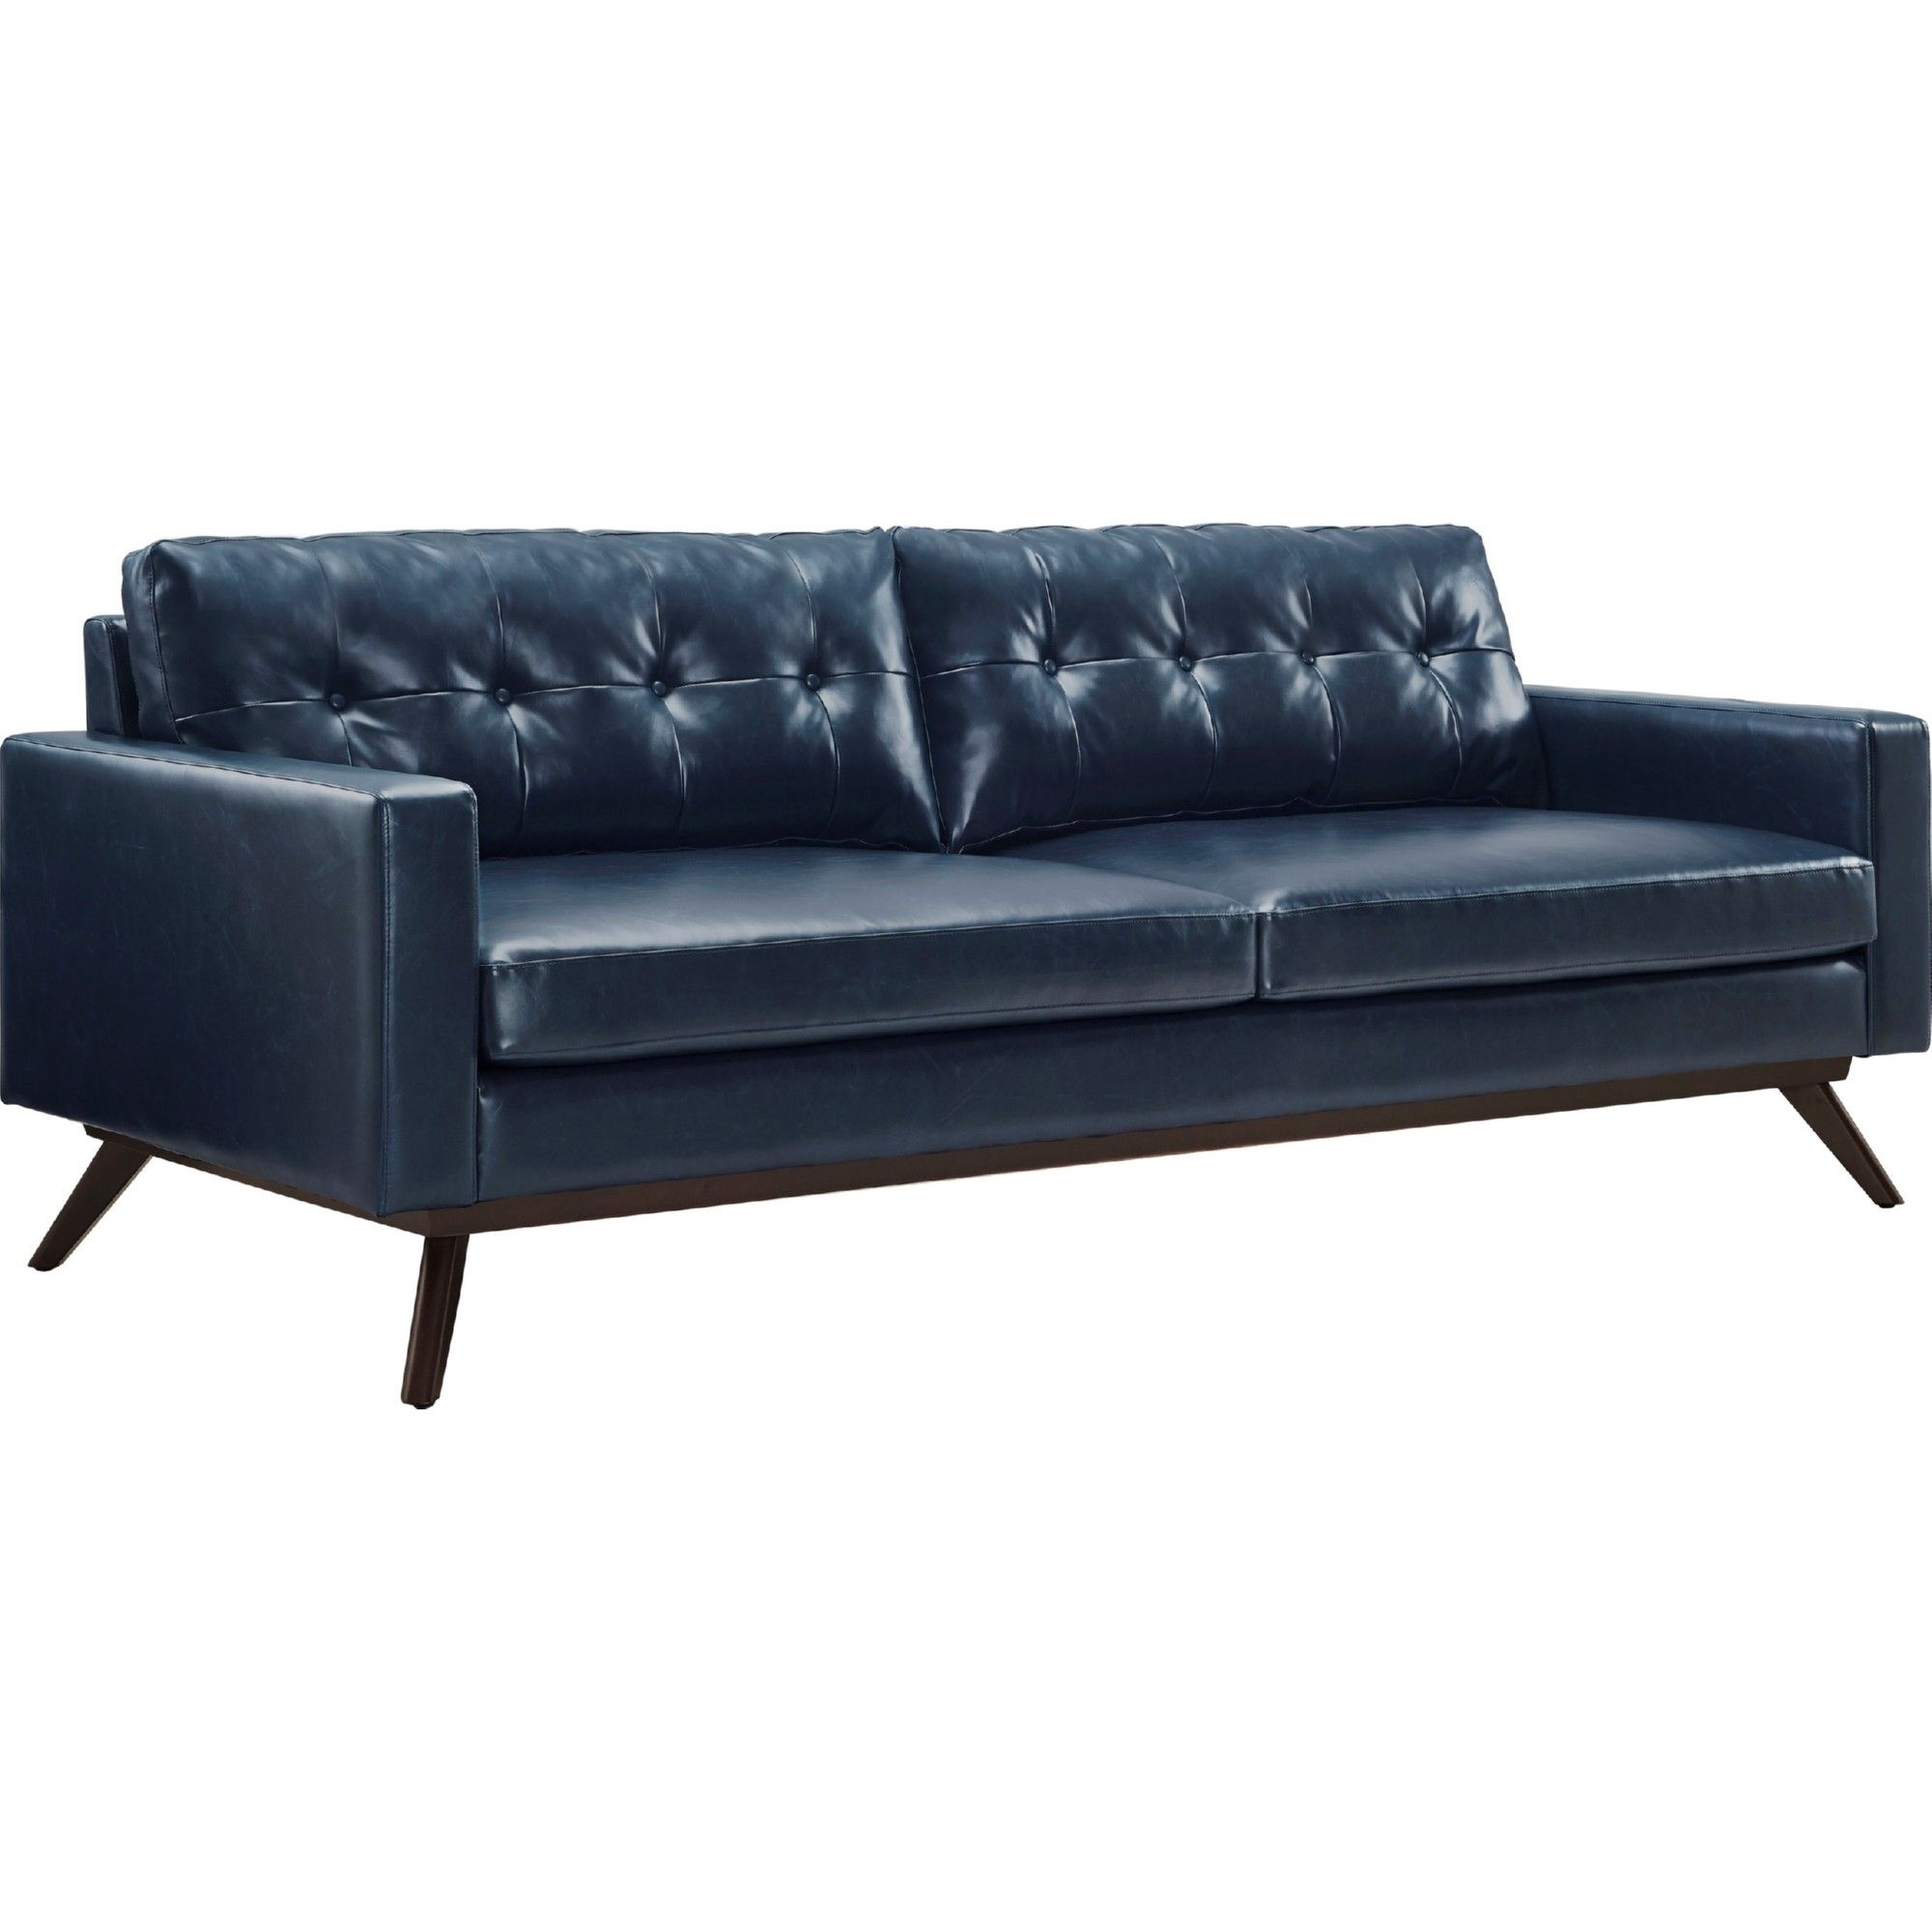 view willey room traditional classic dark sofa leather marine furniture rc sofas blue couch rcwilley living jsp store